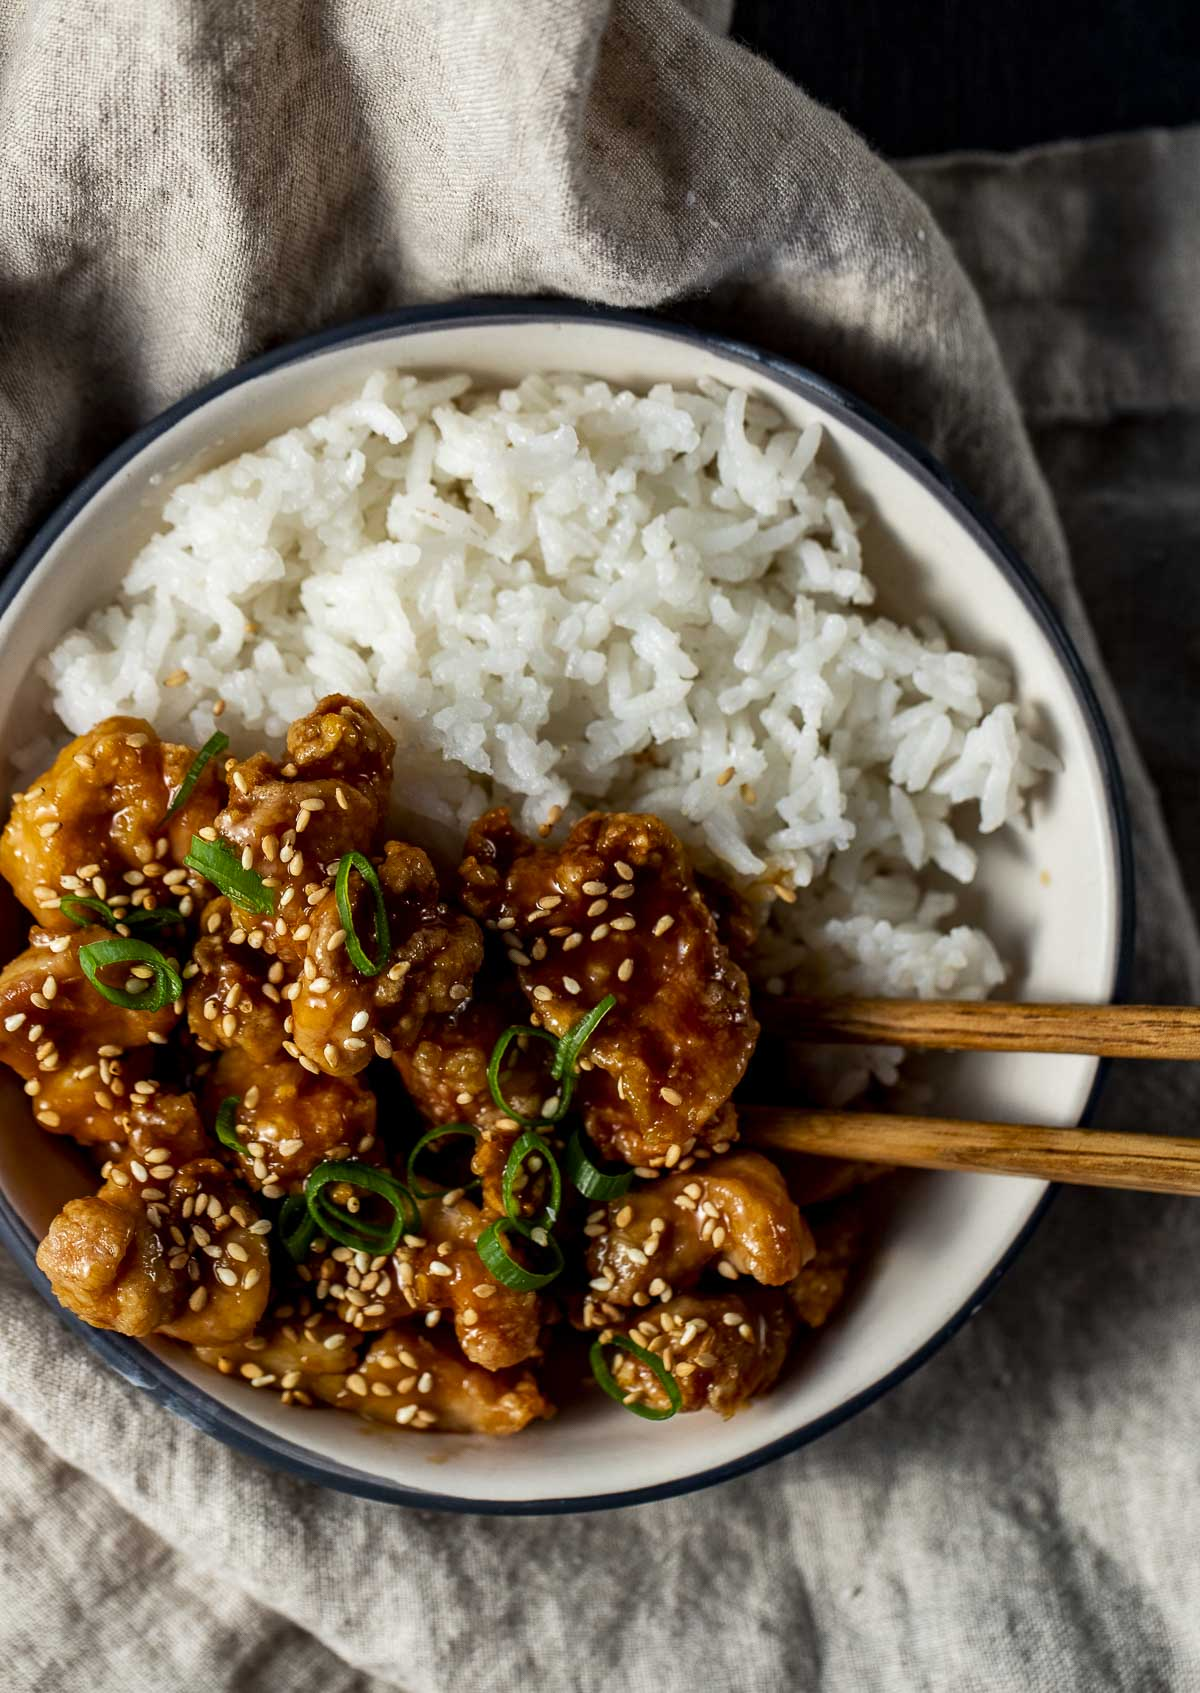 Overhead view of orange chicken and rice in a bowl with chop sticks.